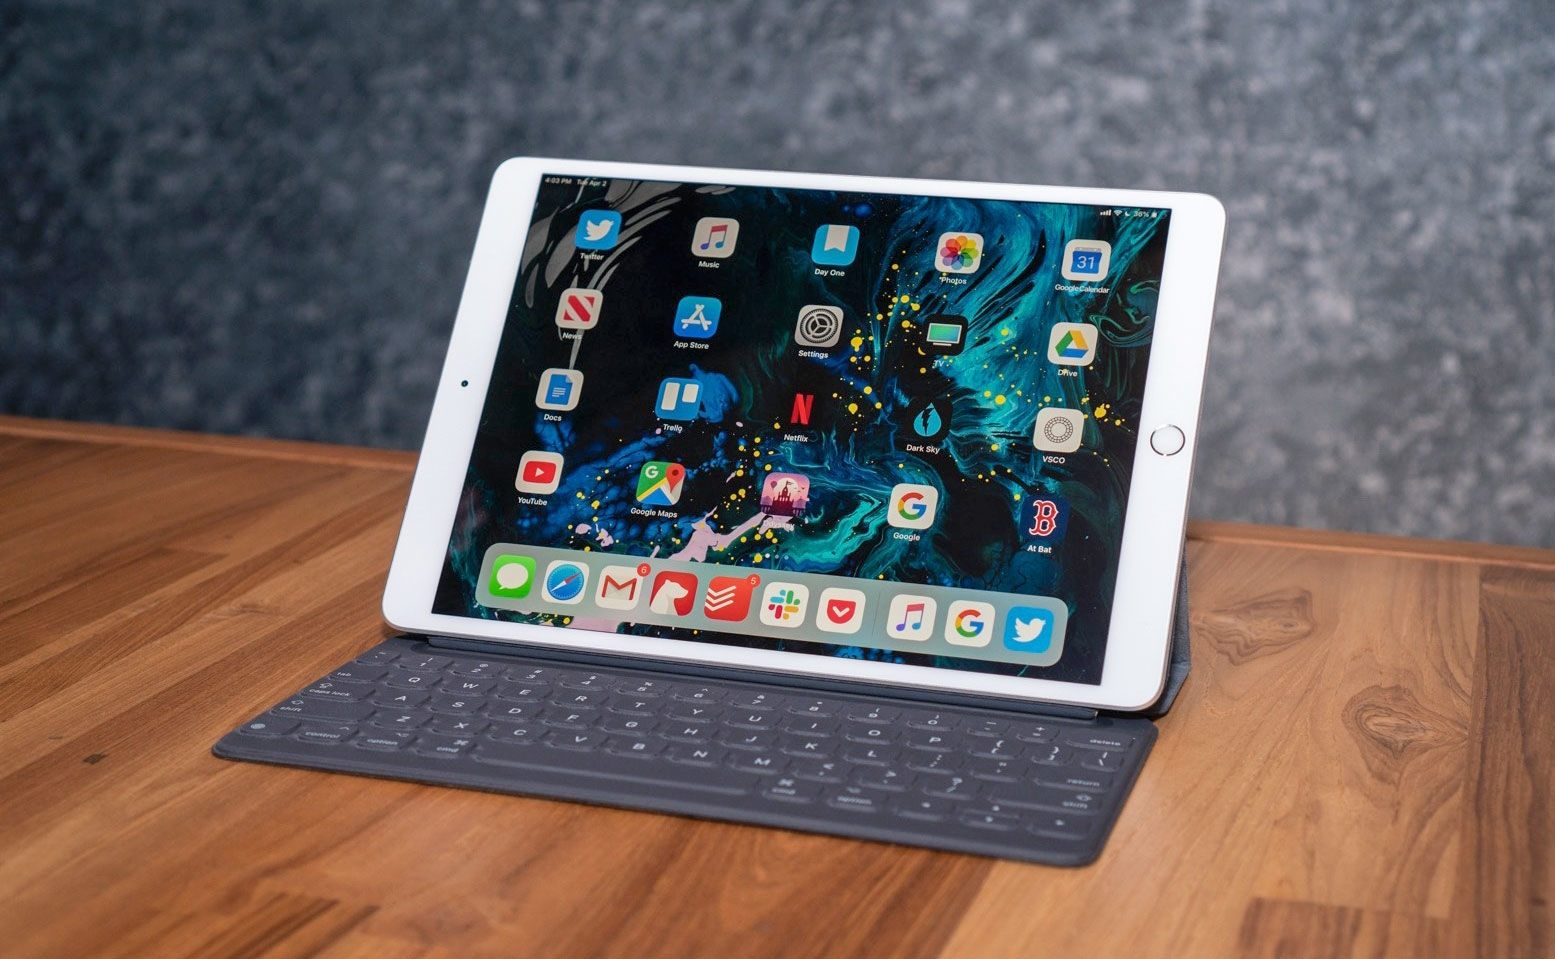 Apple iPad Air review (2019): Just right | DeviceDaily.com